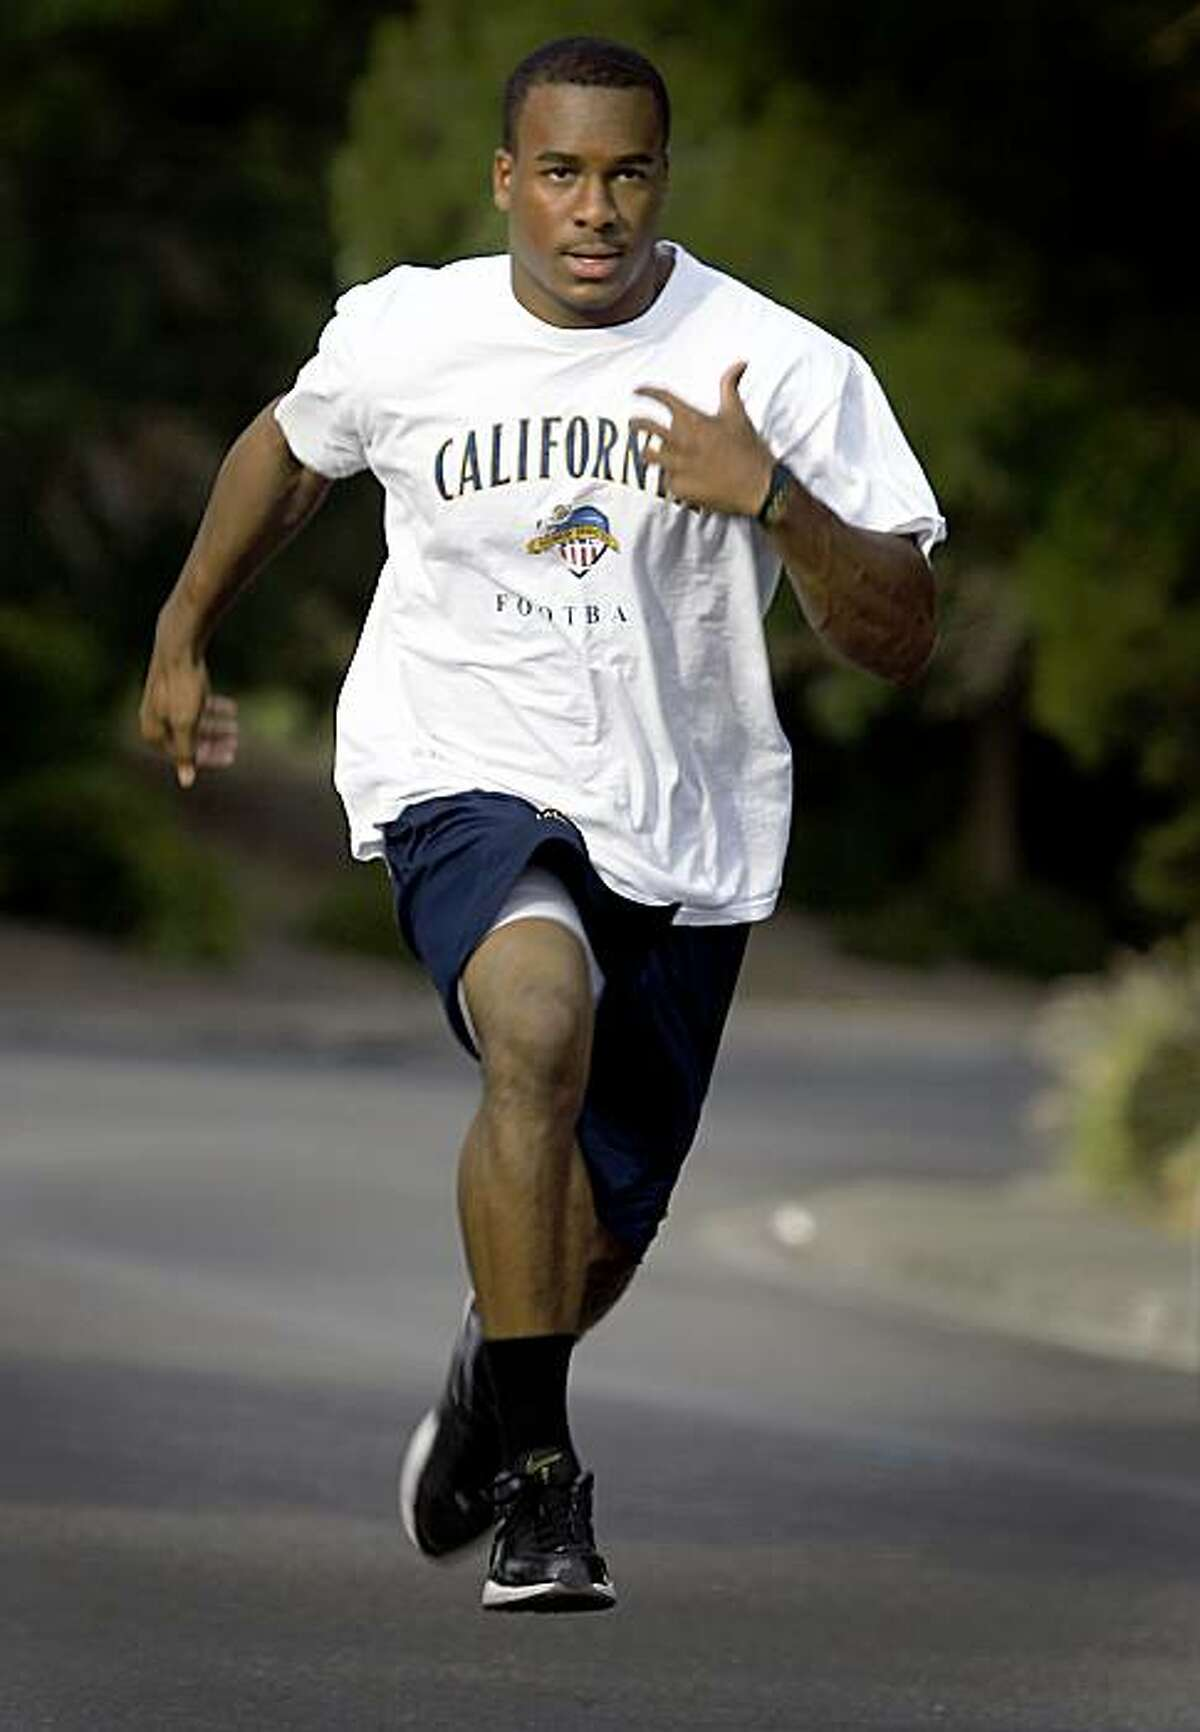 Jahvid Best sprints up a steep section of Georgia Street in Vallejo, Calif., on Wednesday, Aug. 5, 2009. The star running back for the California Golden Bears stays in shape during the off-season by running up the hill several times, two or three days a week.